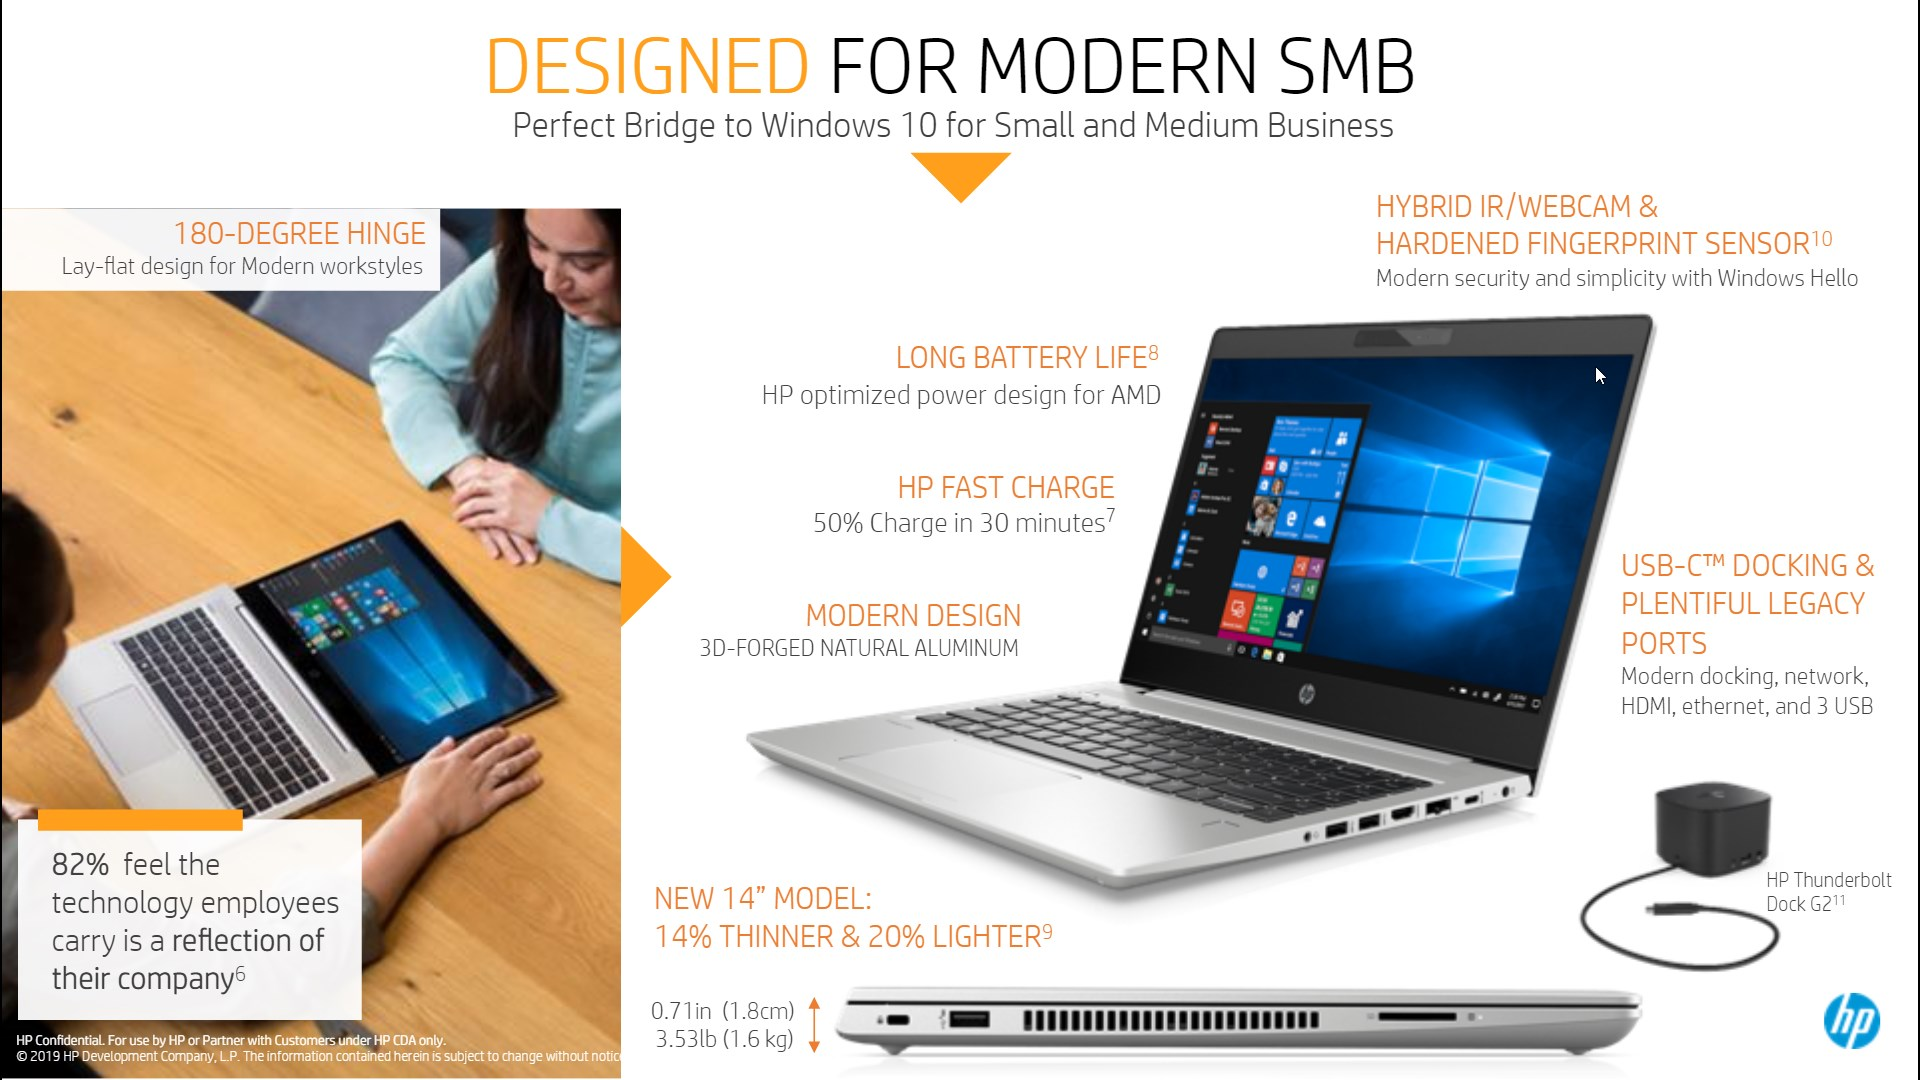 HP Reinvent announcements: New HP Probook, Envy, and Reverb VR